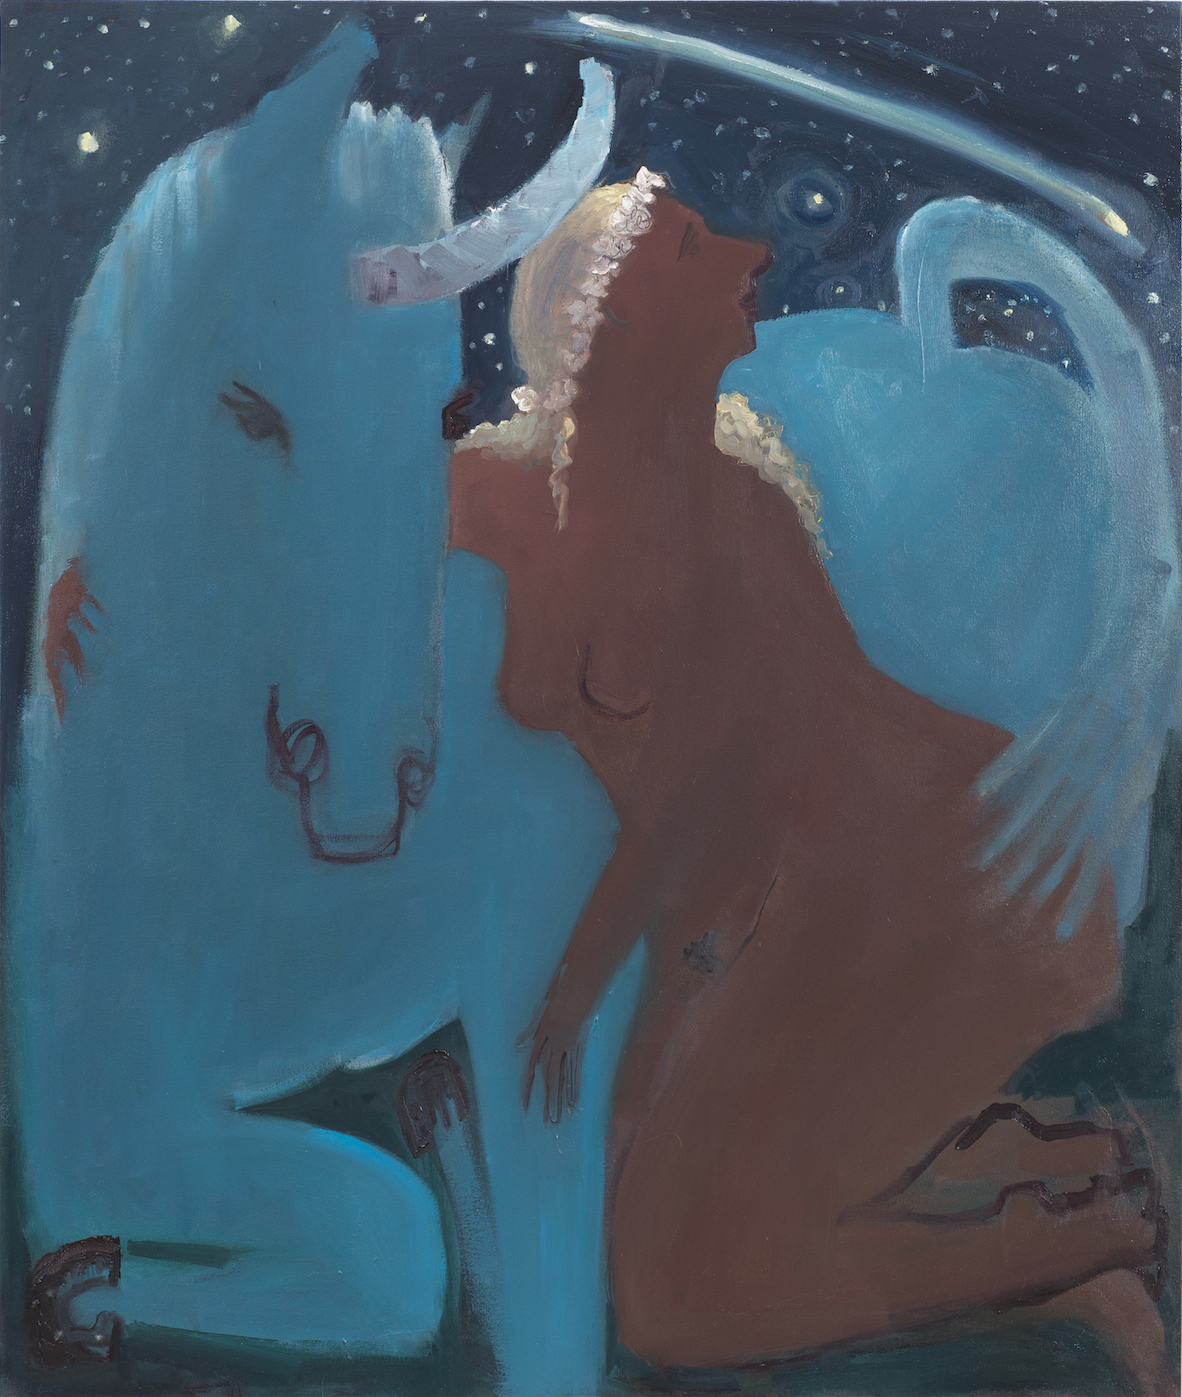 Kyle Staver, Unicorn and Shooting Star, 2015, oil on canvas, 42 x 36 inches (cou